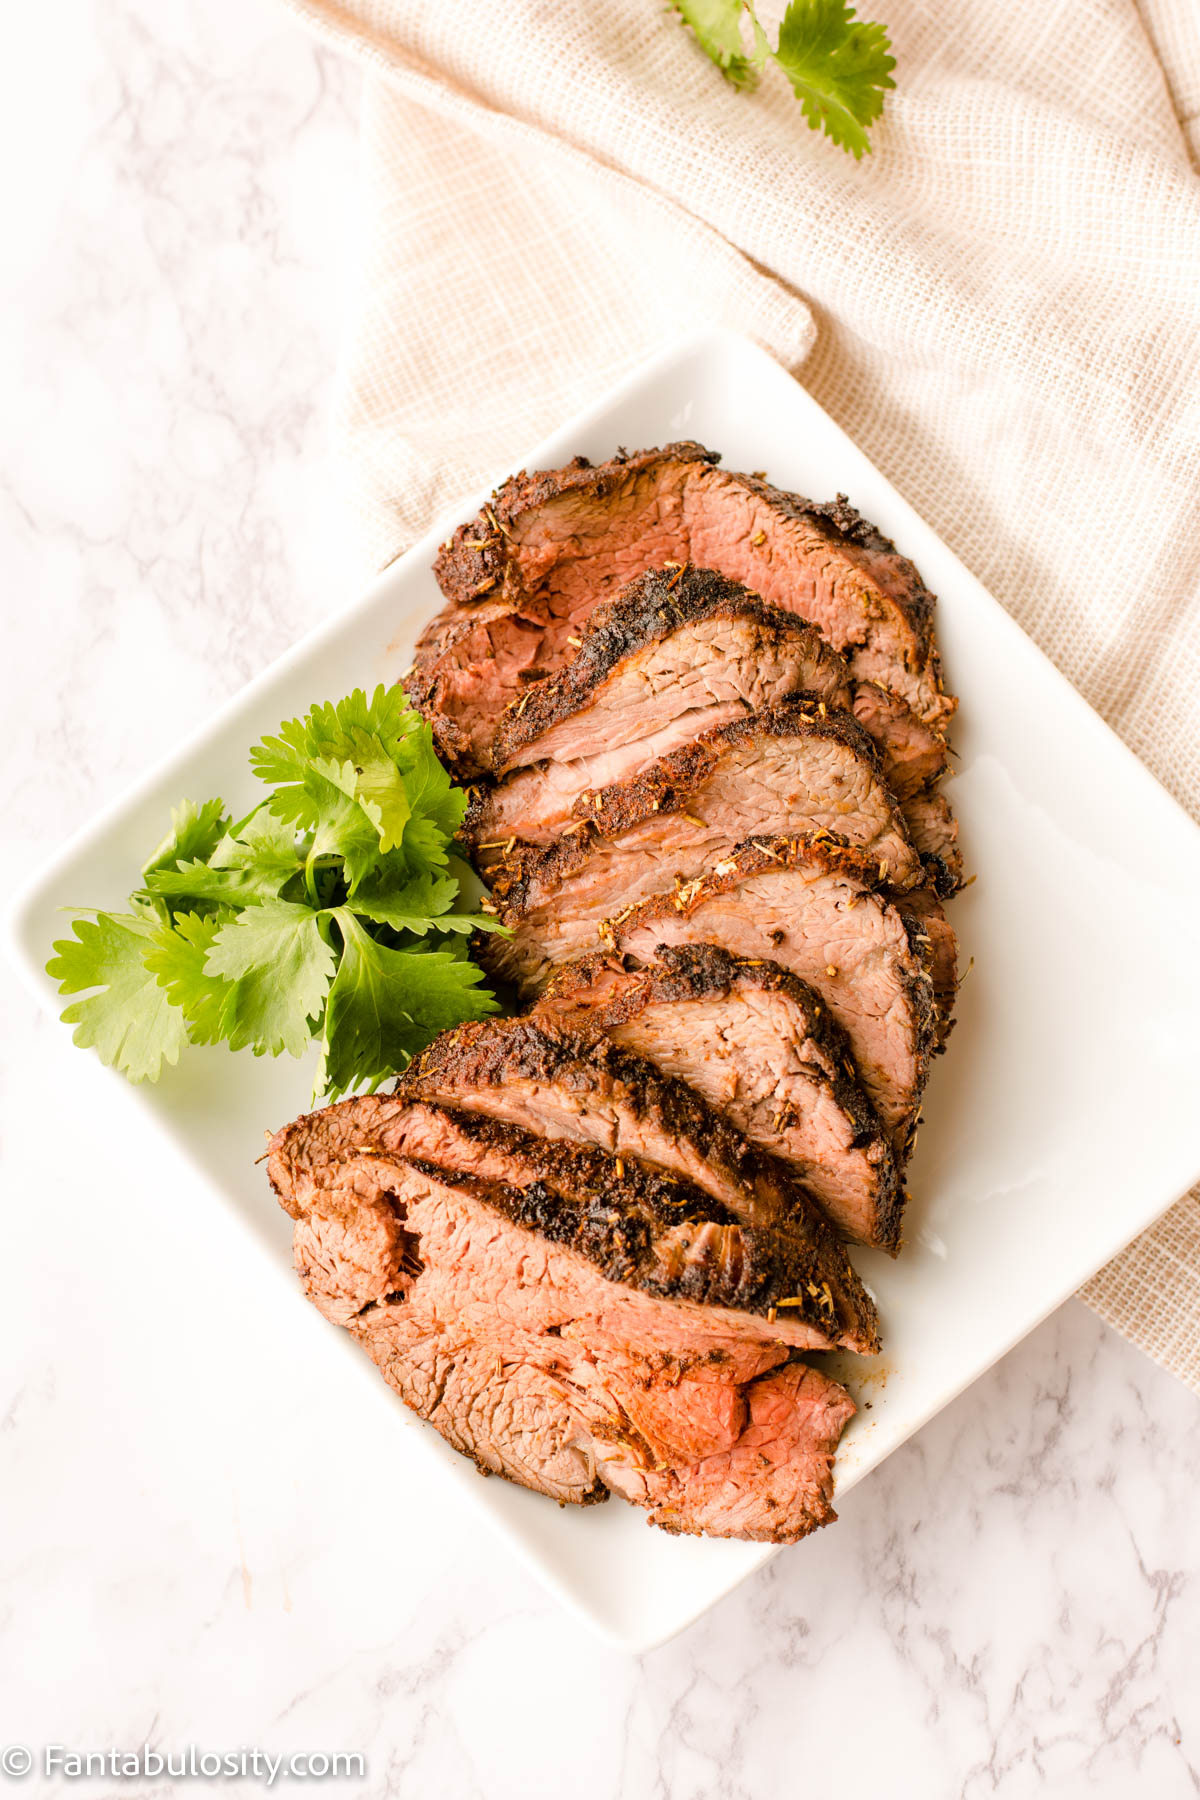 Grilled Beef Tenderloin with Rub